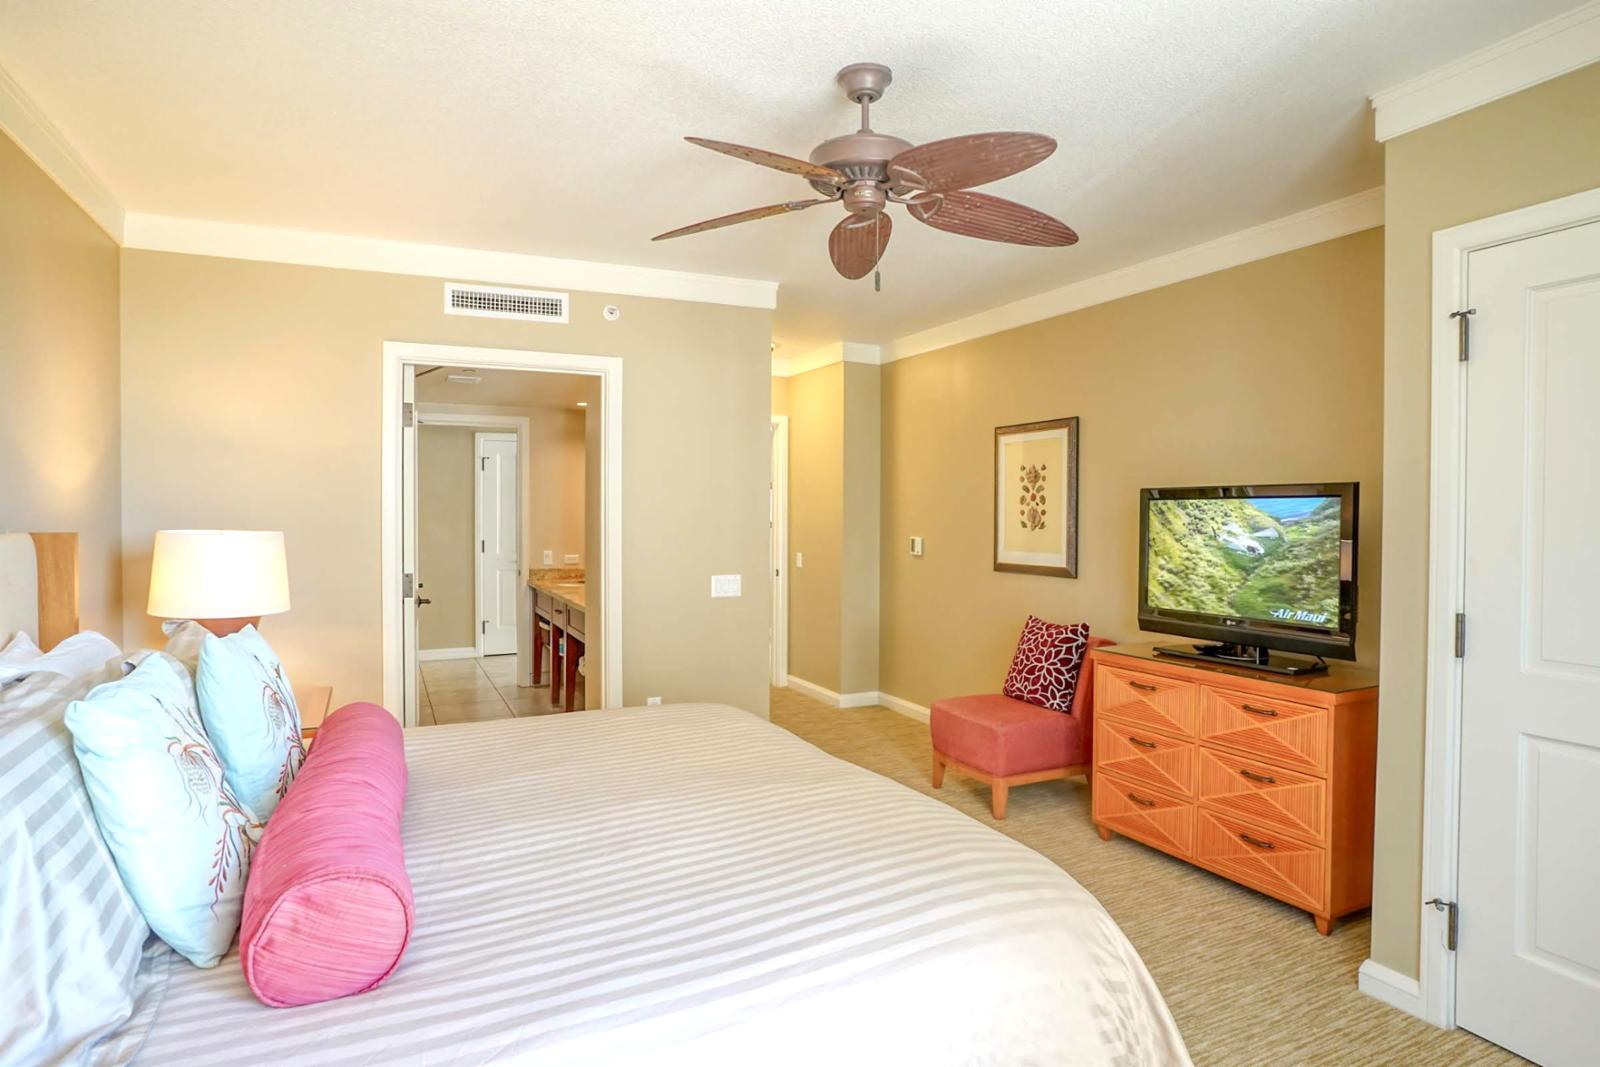 Large flat screen television and ceiling fans